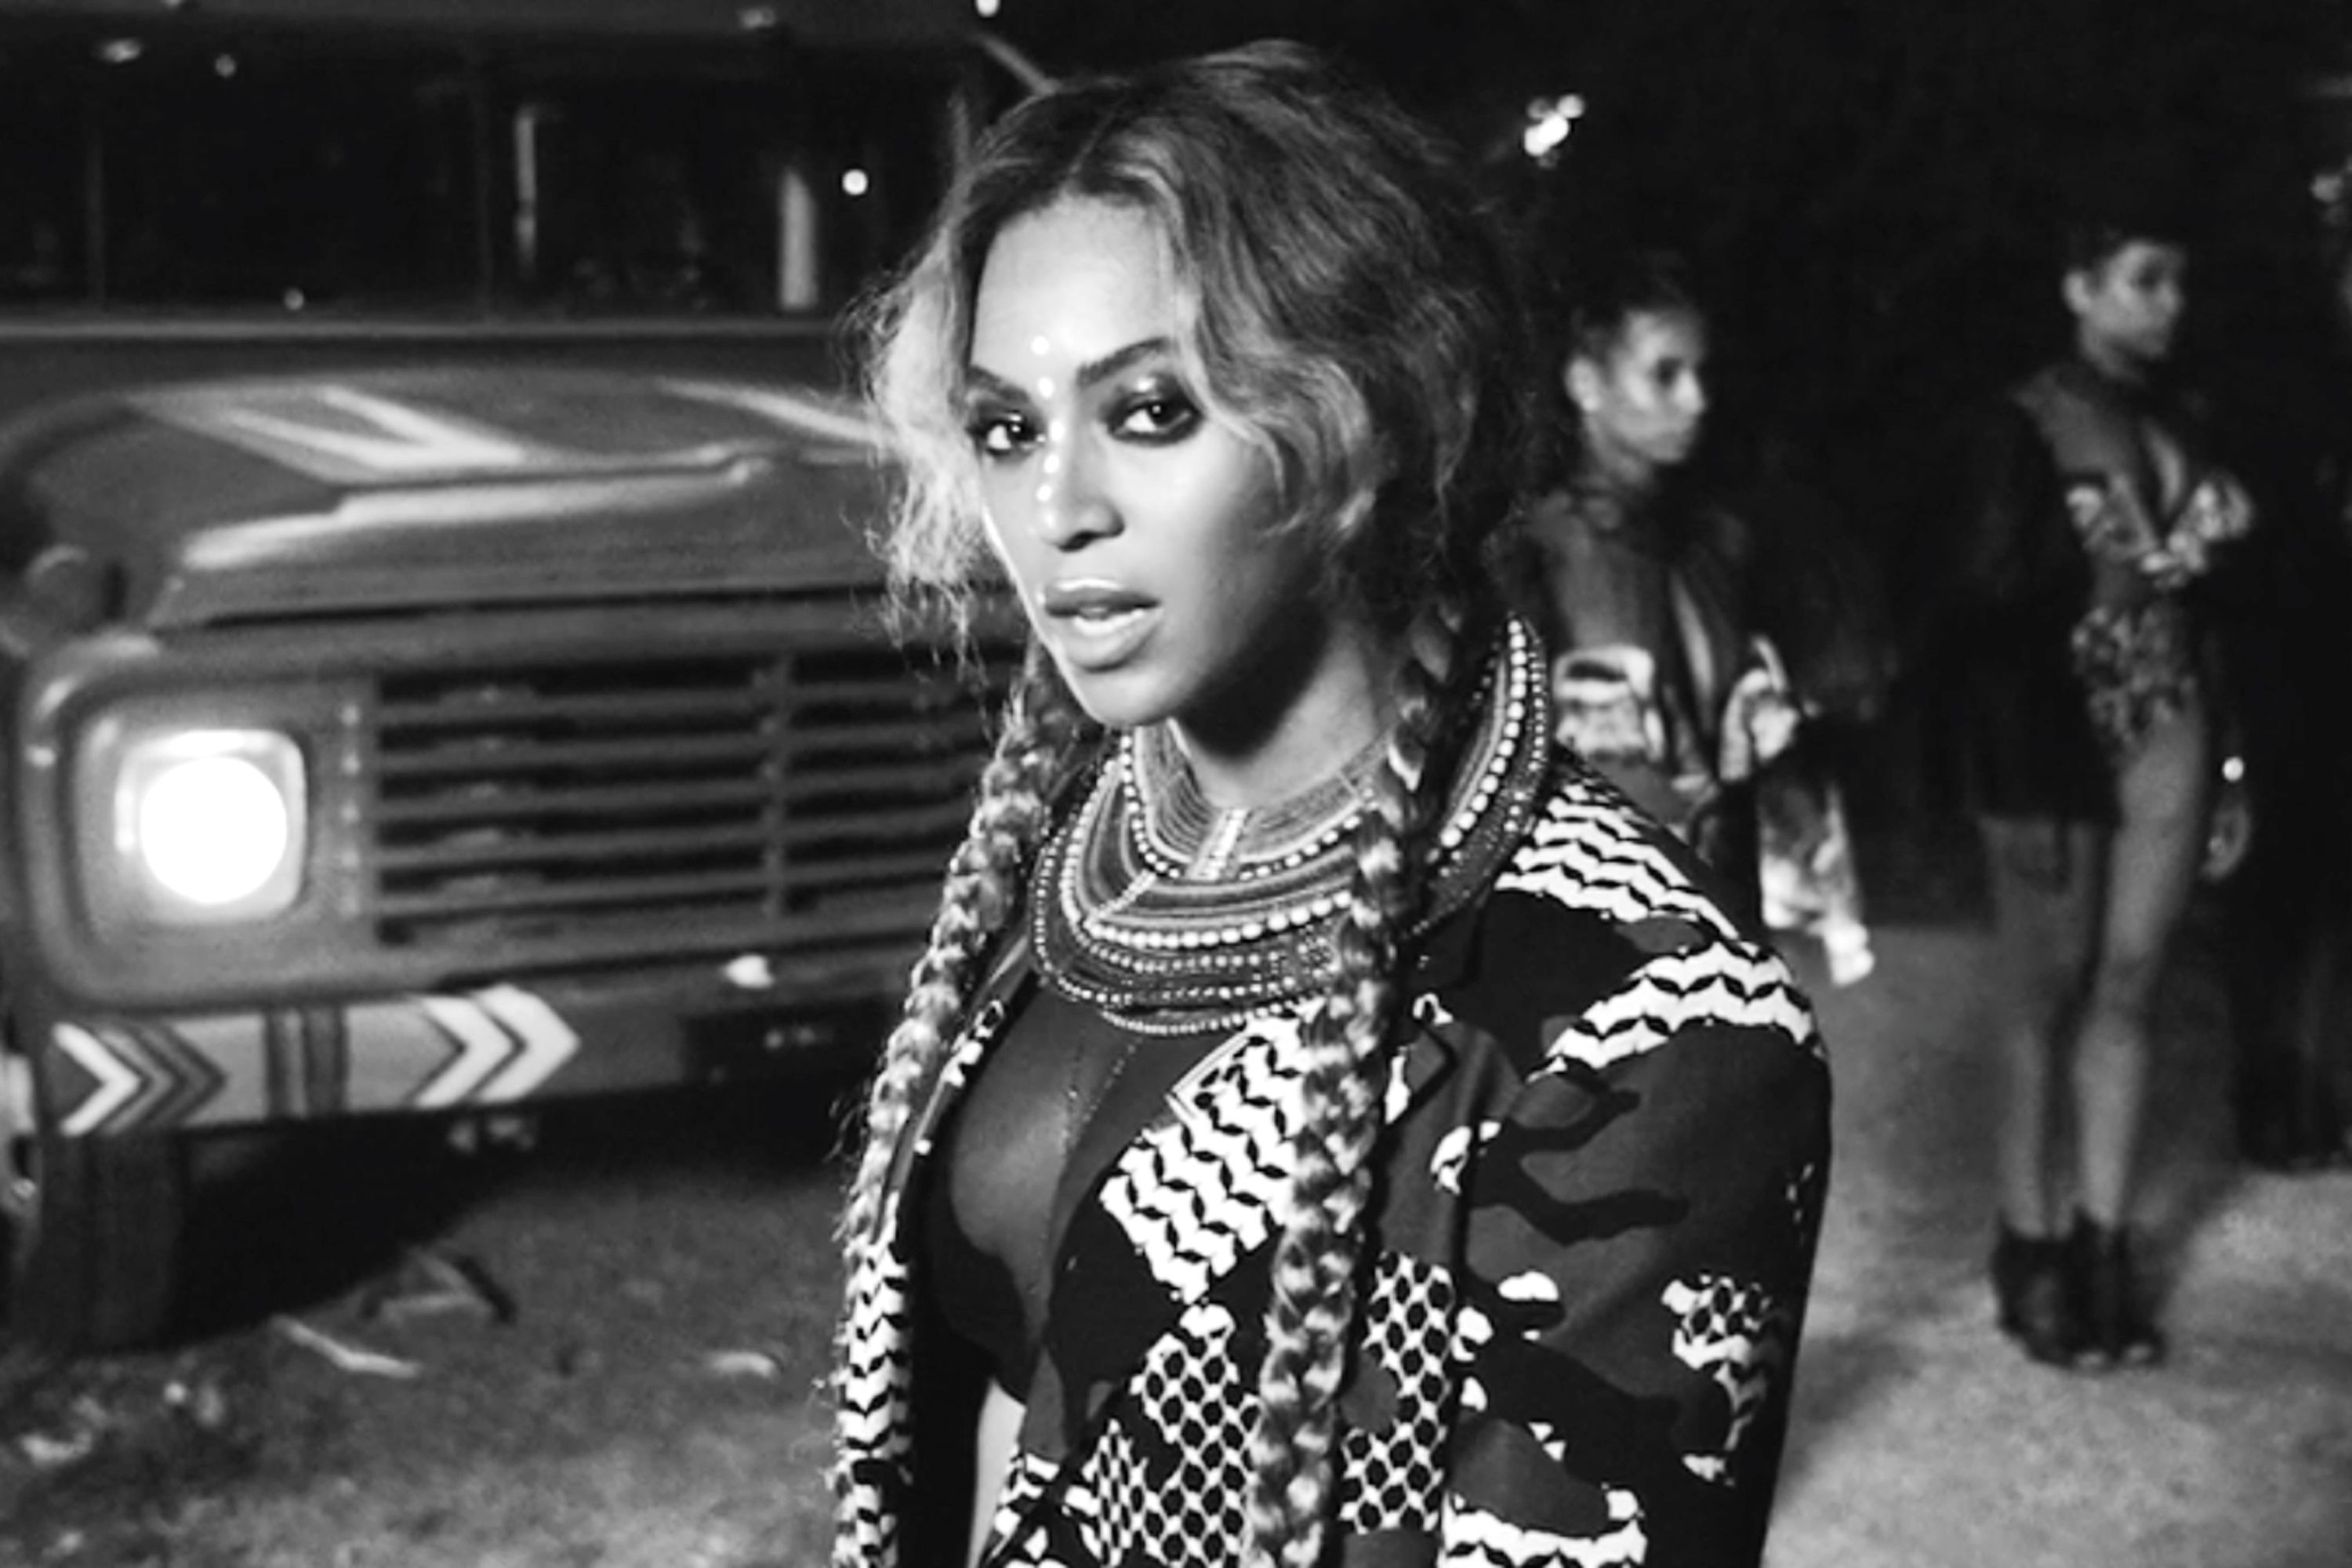 You Can Finally Stream Beyoncé's 'Lemonade' Album On Spotify And Apple Music